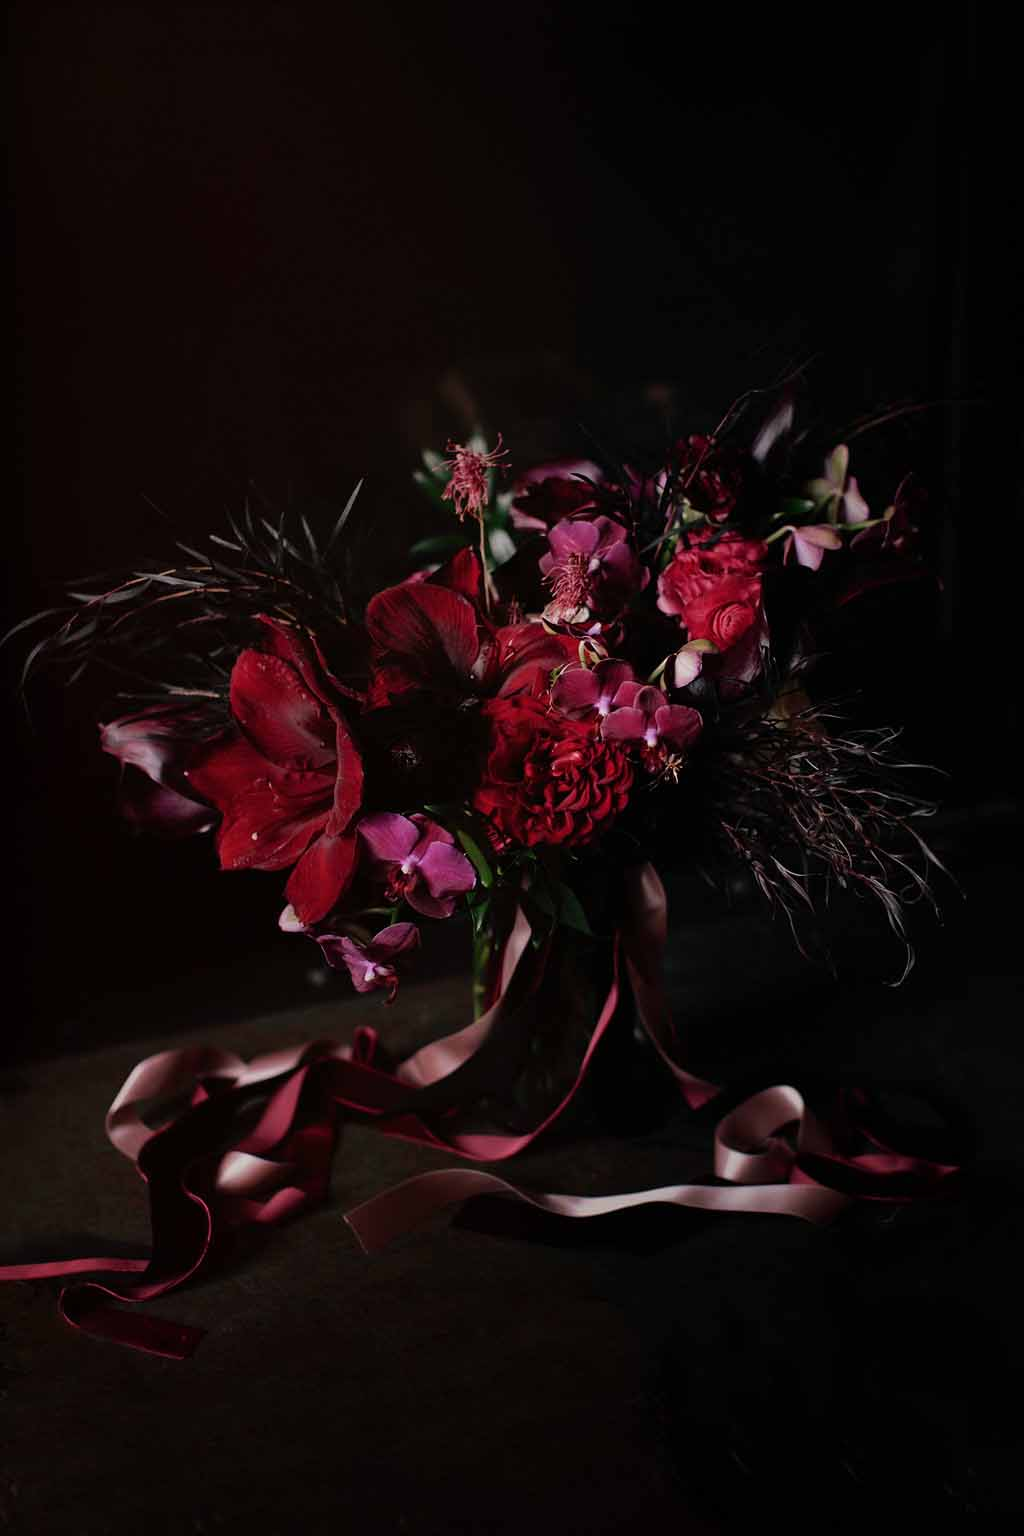 Oblong bouquet in deep red with red amaryllis, red garden roses, red ranunculus, and black agonis foliage, with long ribbon streamers - Bridal Bouquet Shapes by Flora Nova Design Seattle